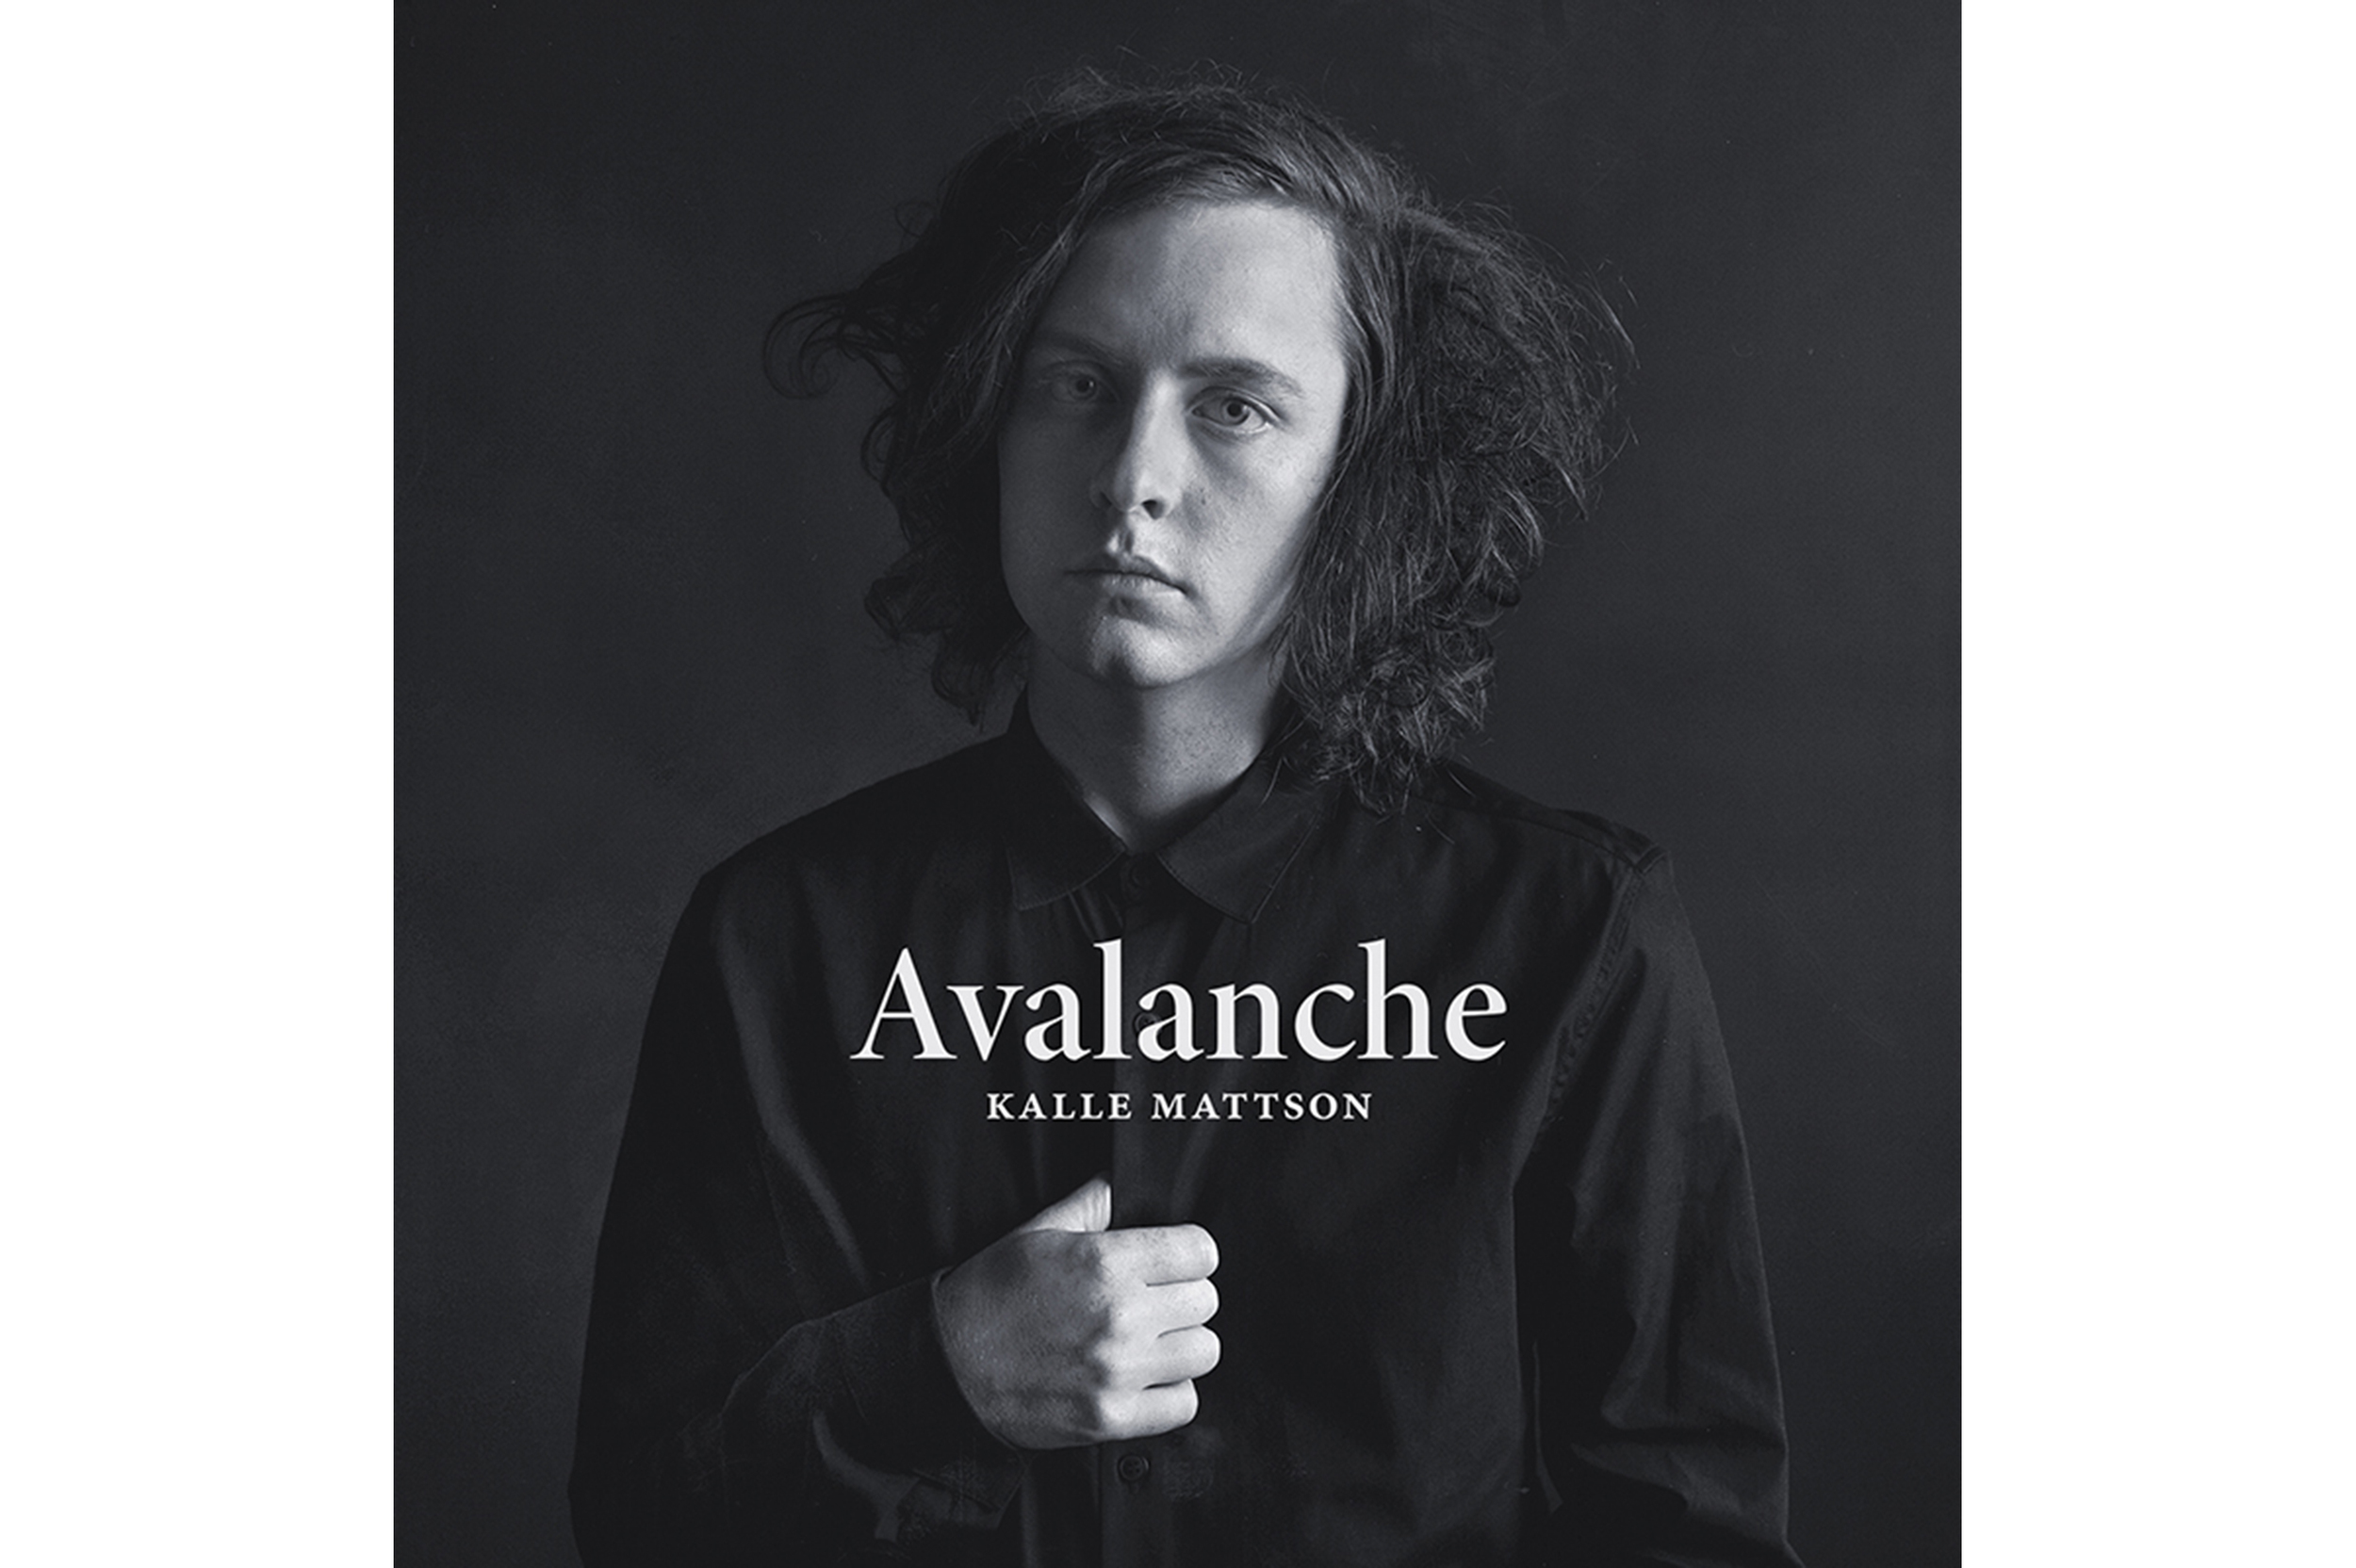 Kalle Mattson, photographed for Avalanche album cover, Toronto, 2014